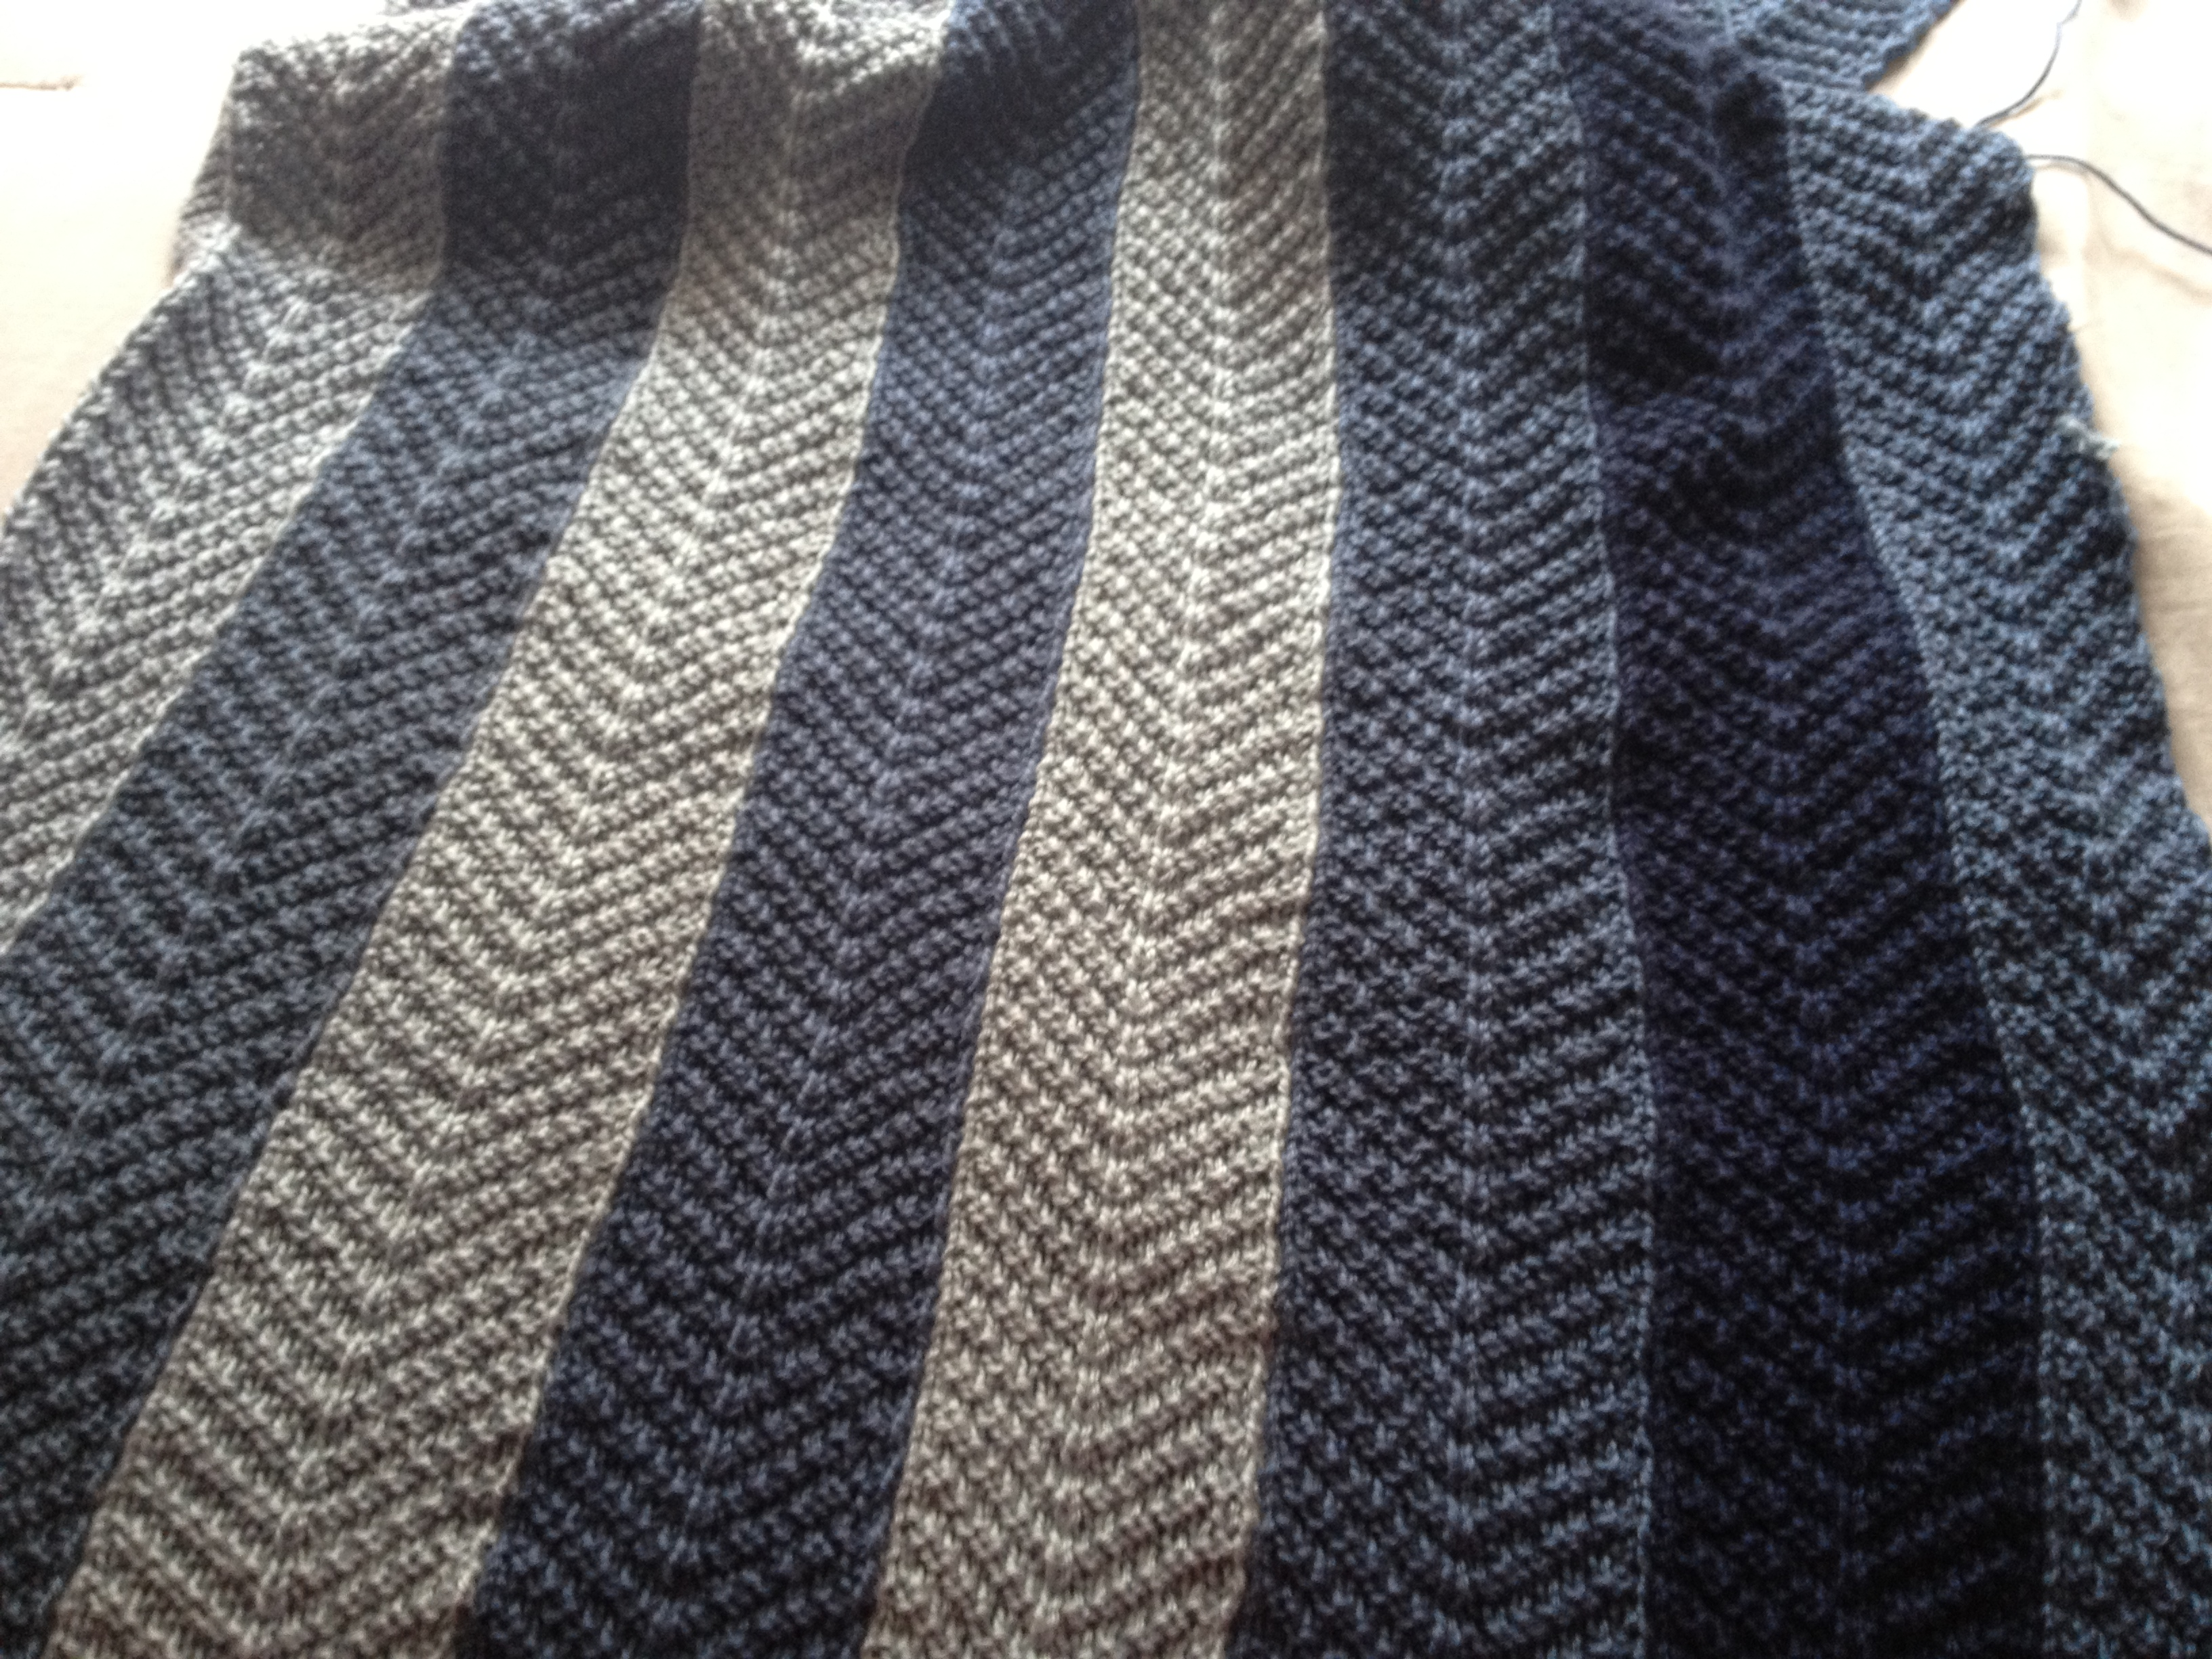 Finishing my Knitted Chevron blanket | Knits, Bits & Pics